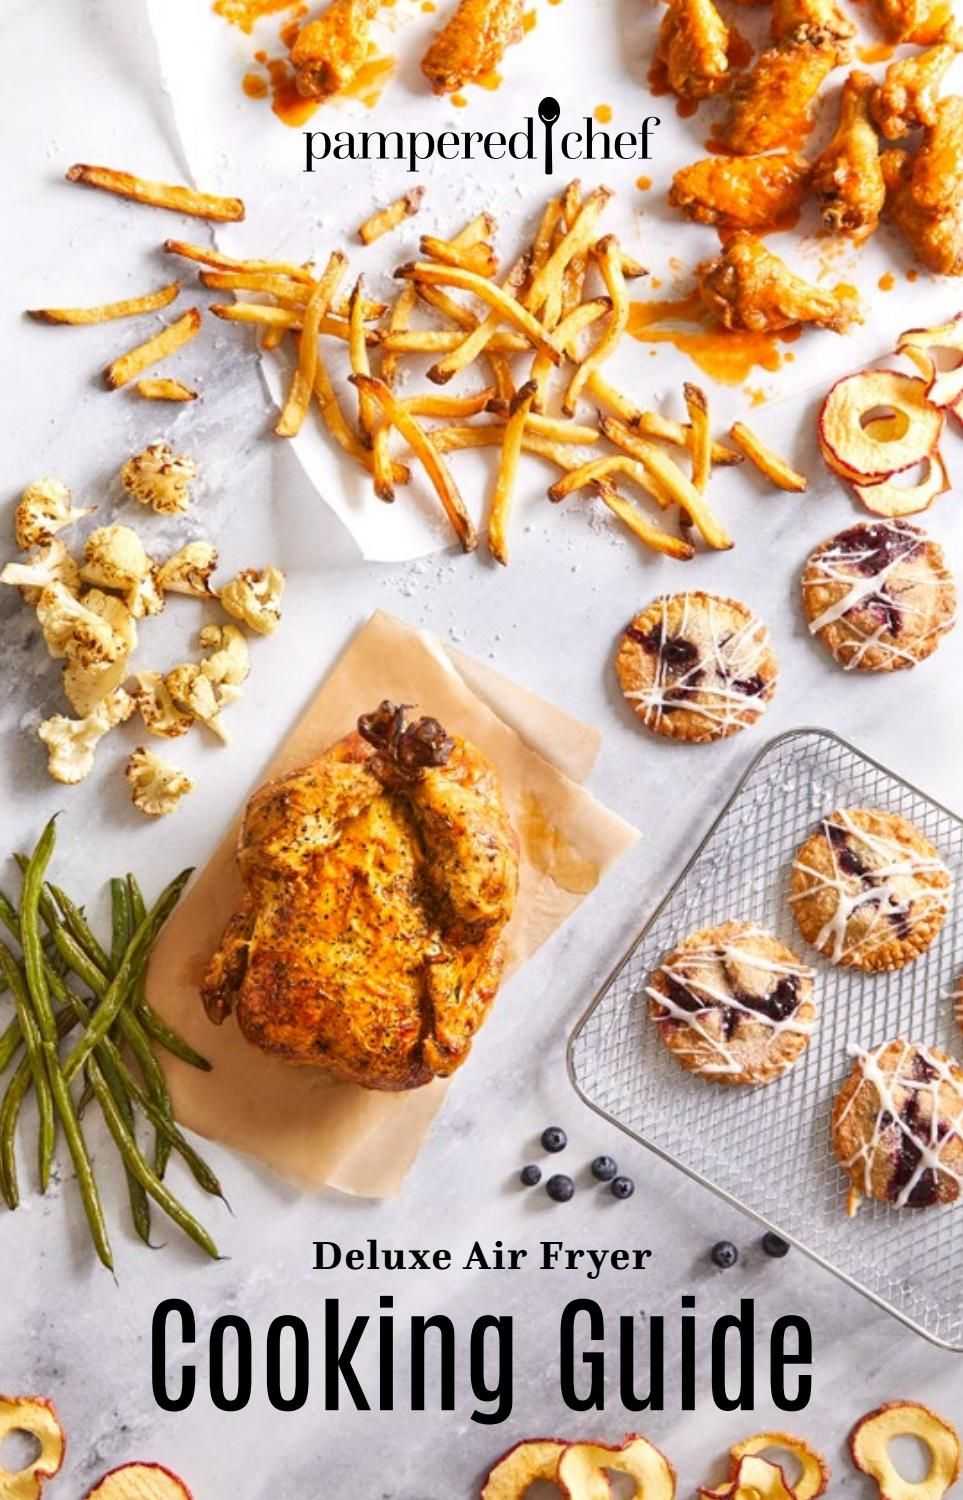 Pampered Chef Air Fryer Recipes